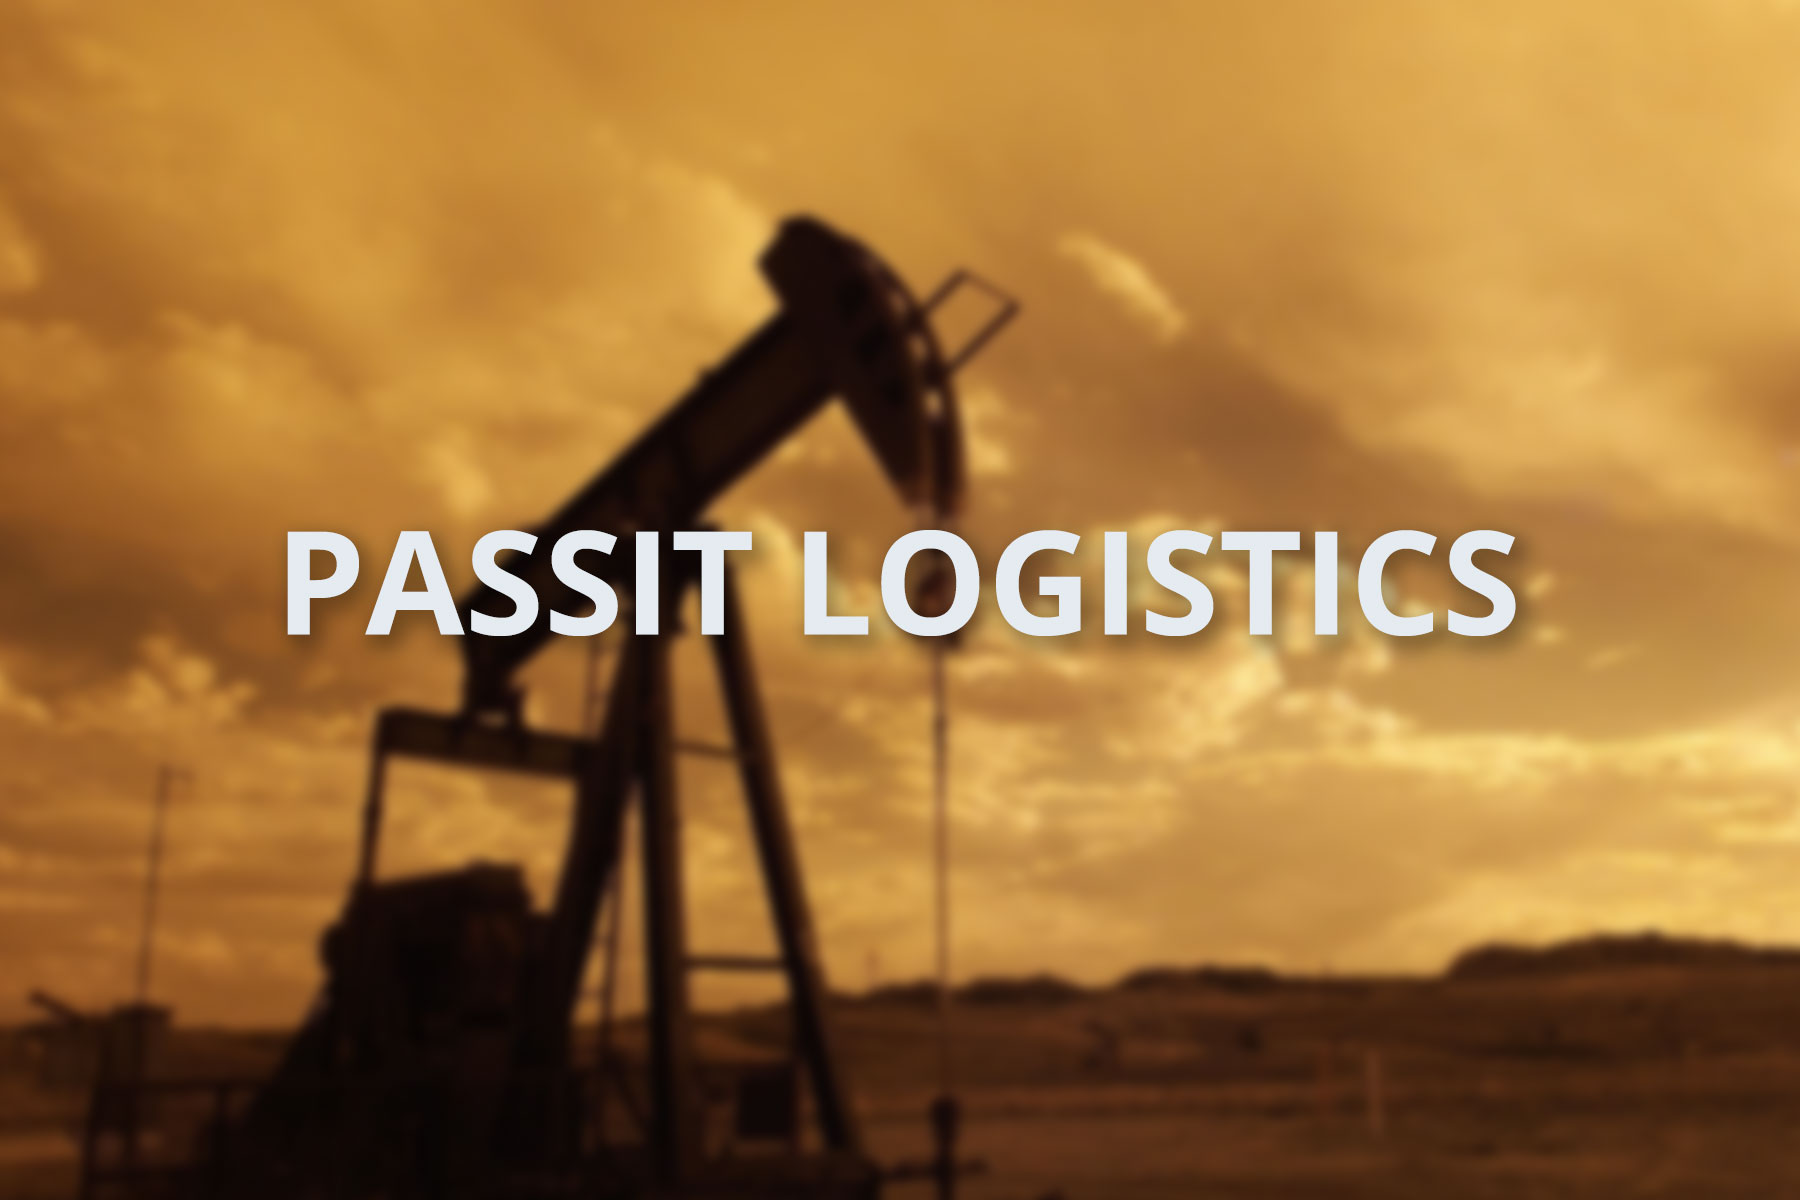 PASSIT Logistics Feature Image